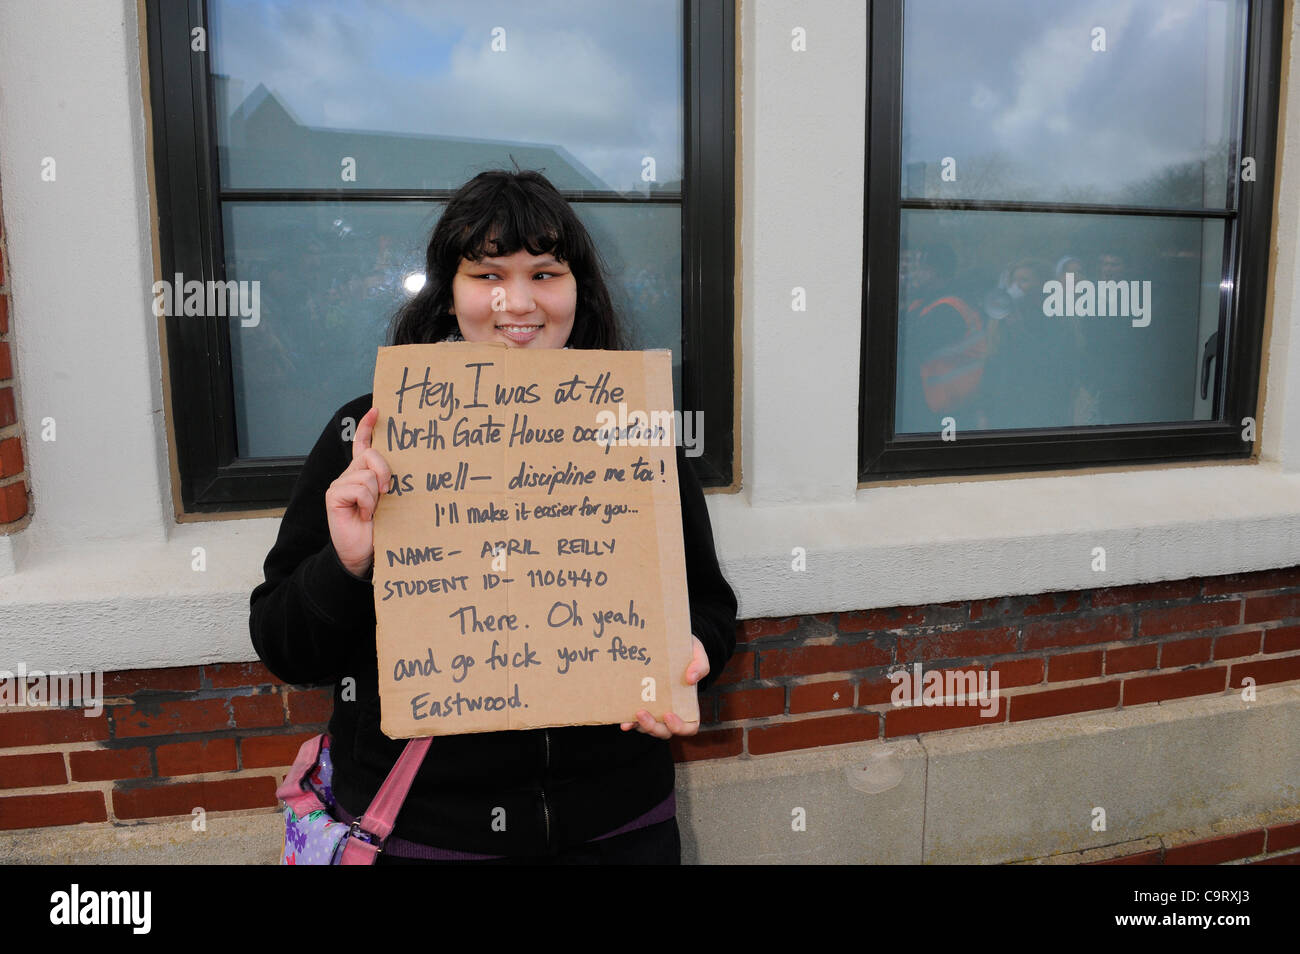 15/02/2012, Birmingham University, UK. Protester outside Nuffield Learning Centre where student Simon Furse is being - Stock Image